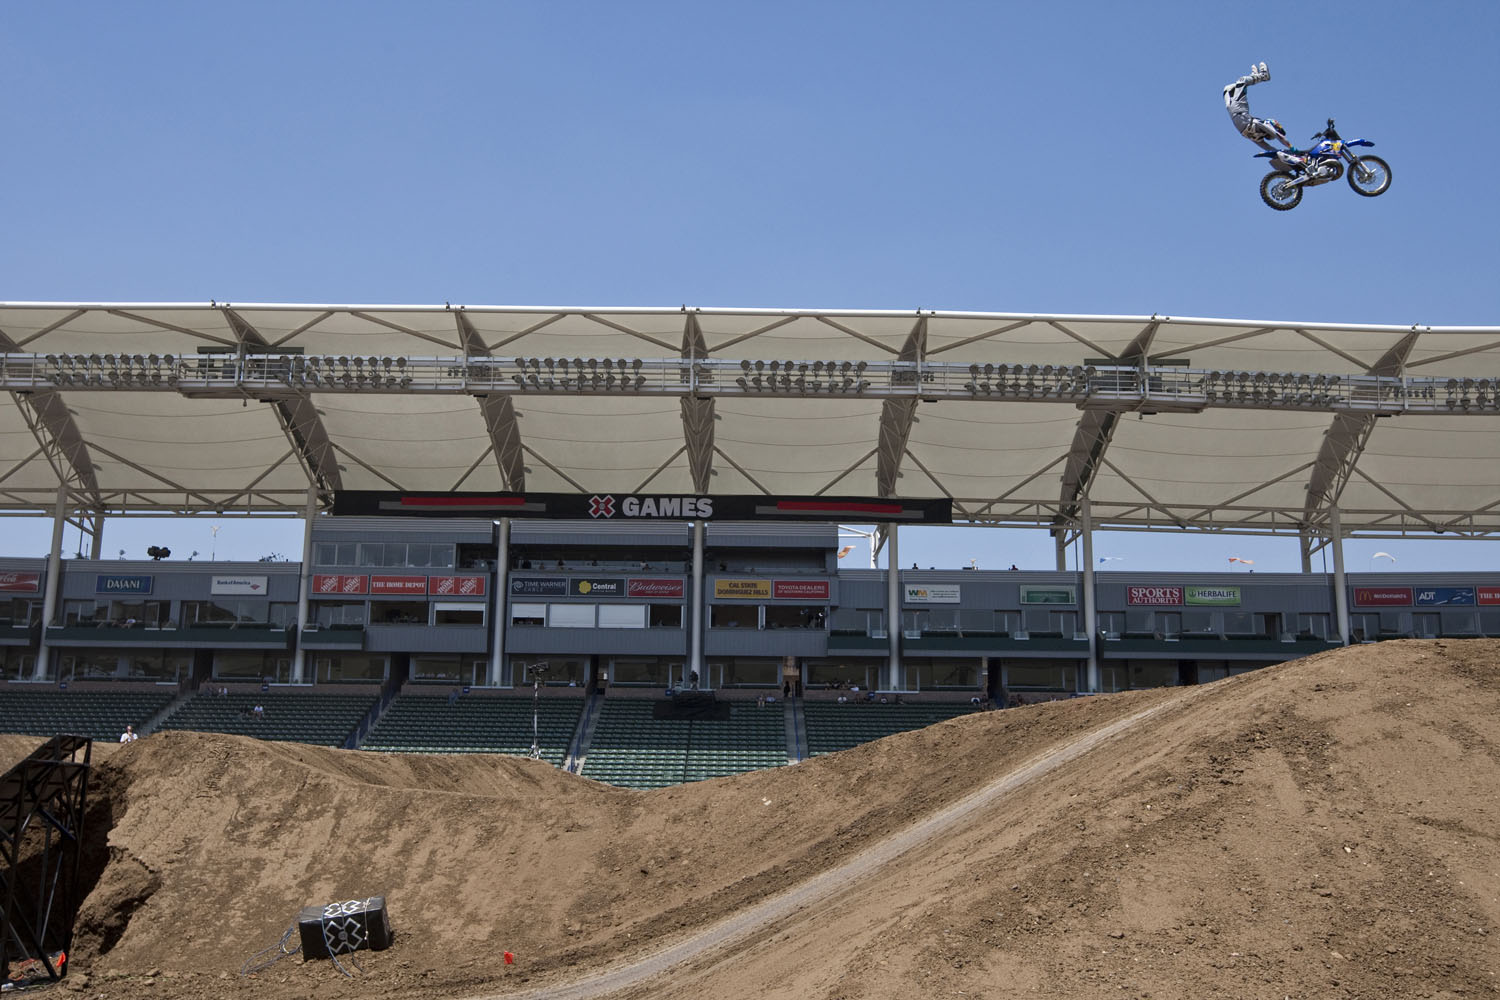 Robbie Maddison gets some serious air during the Moto X Freestyle at X Games 15 at Home Depot Center on July 31, 2009 in Carson, California.